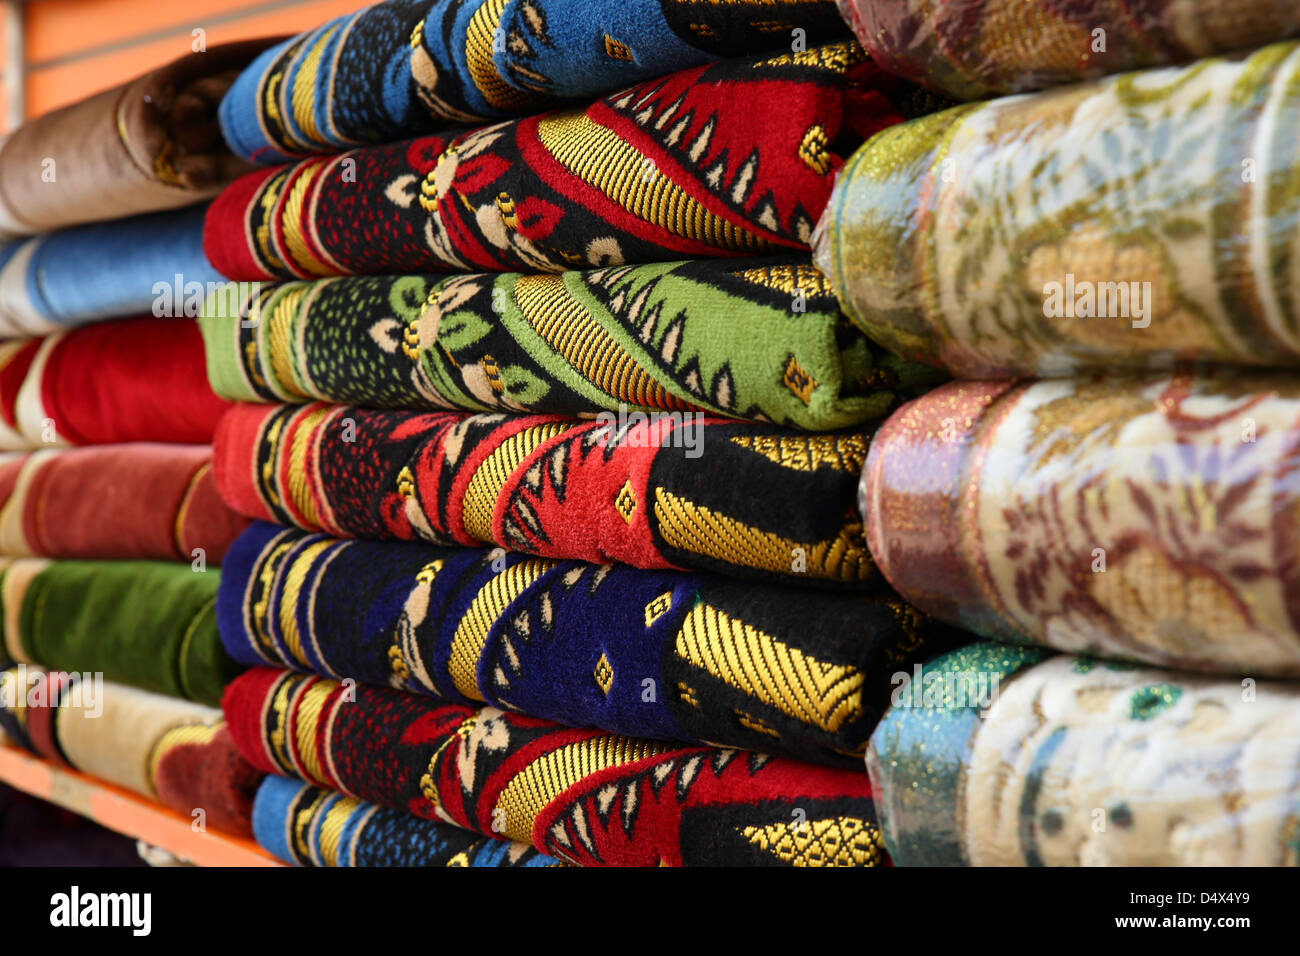 Closeup shot of ornate rugs and textiles at market in Dubai, United Arab Emirates - Stock Image